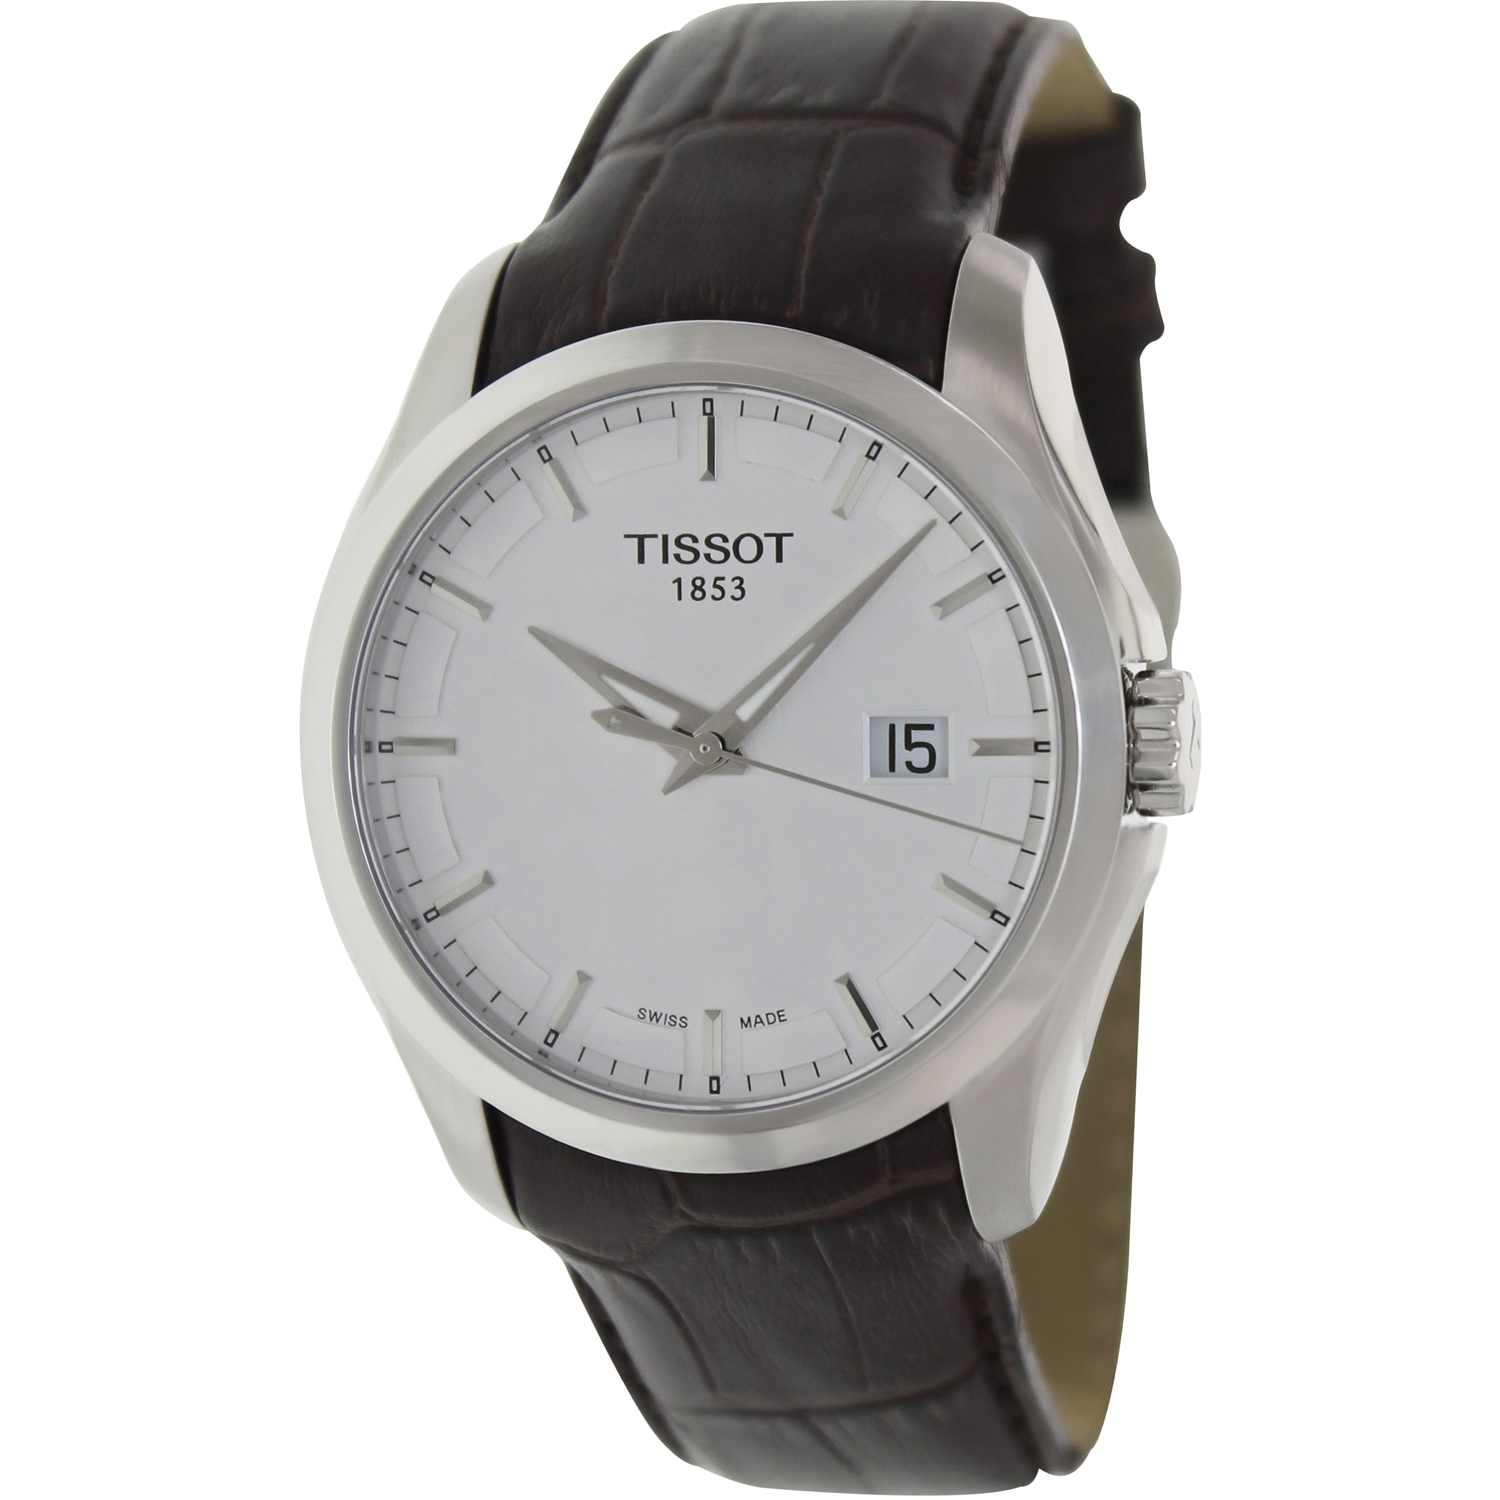 Tissot Men's Couturier T035.410.16.031.00 Brown Alligator...